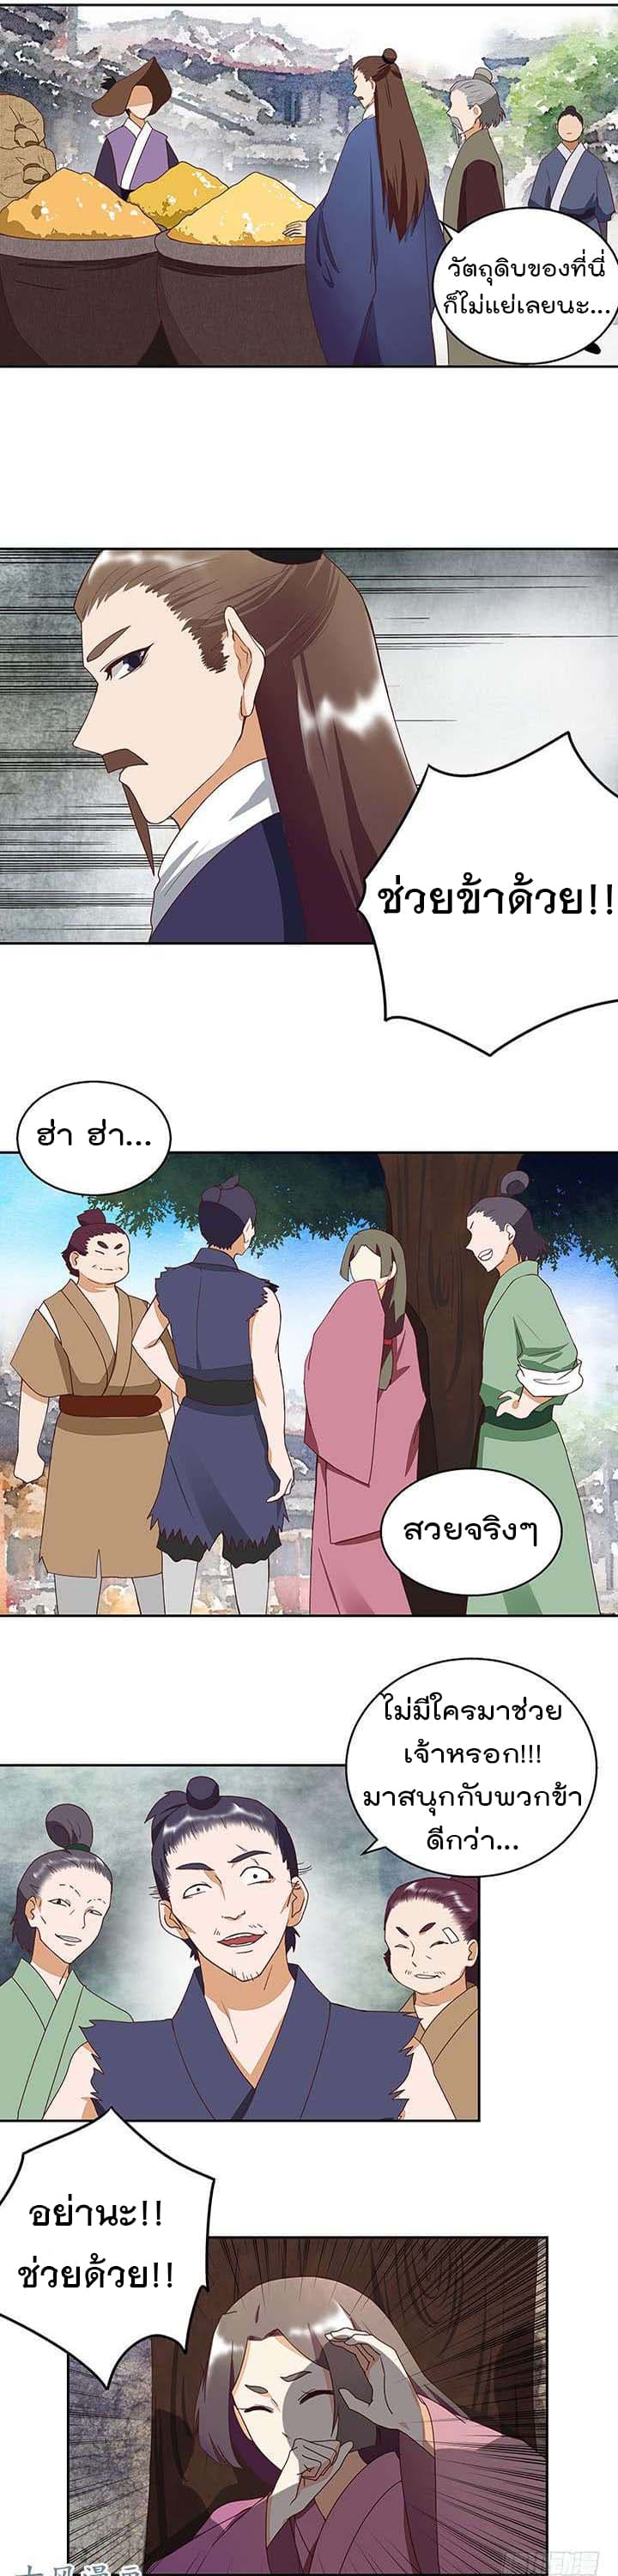 The Bloody Merchant Empress and the Cold Husband s Forceful Doting - หน้า 5